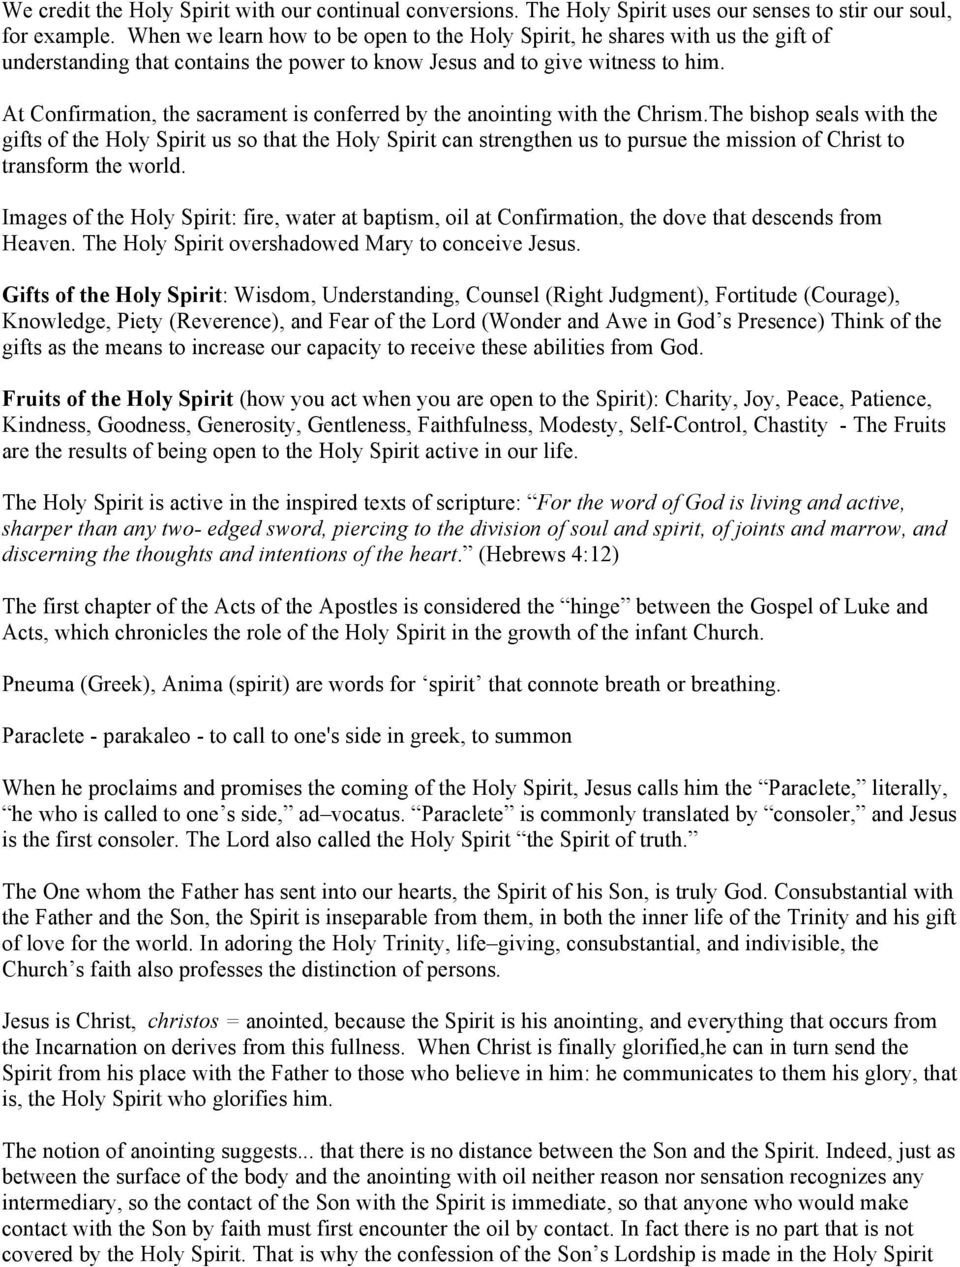 how to receive the healing anointing pdf